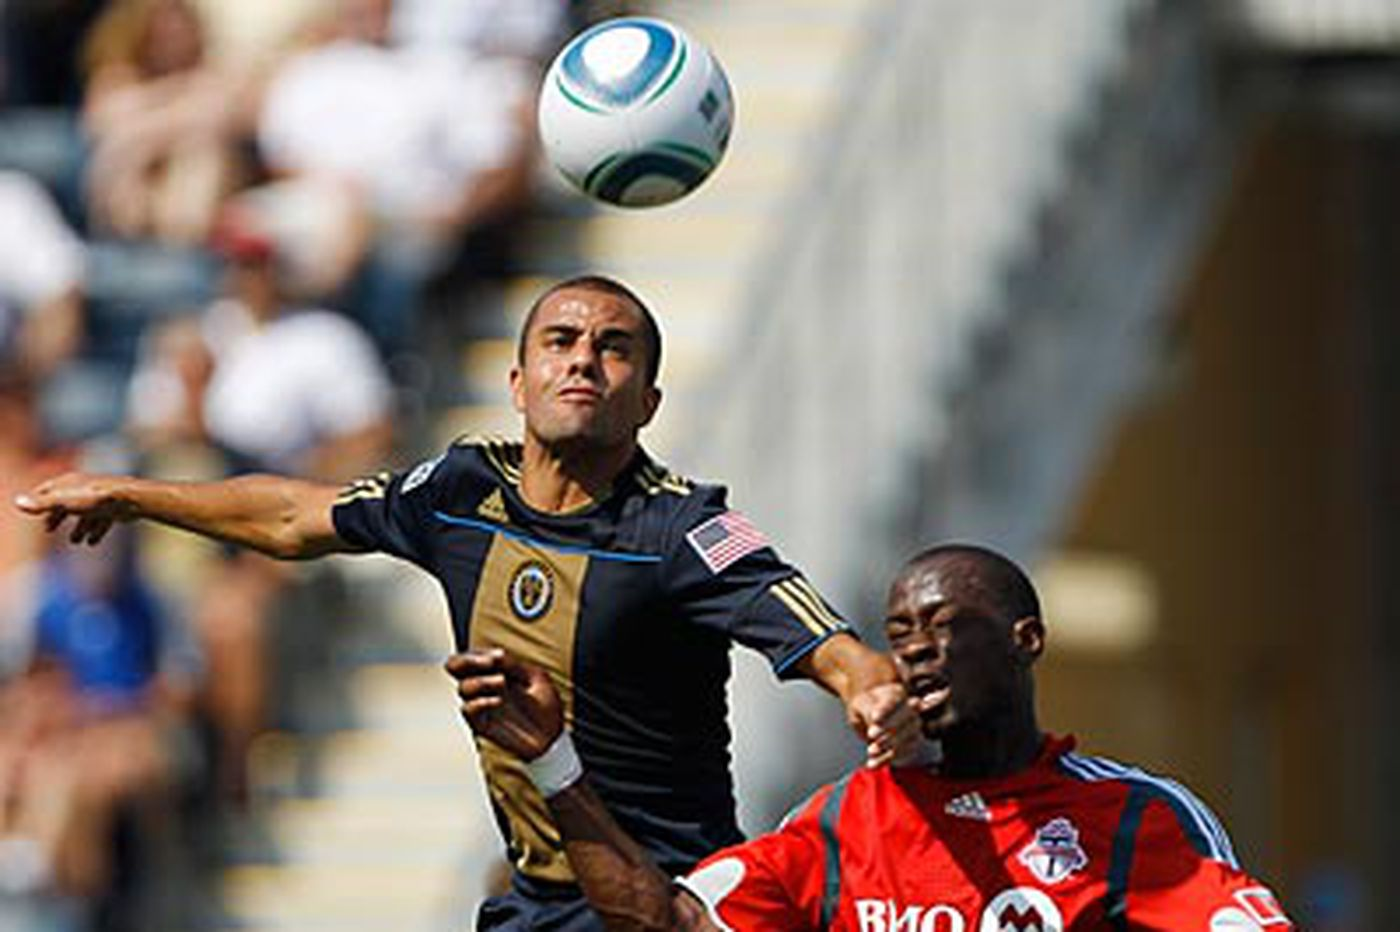 Union loses Seitz, Fred in re-entry draft